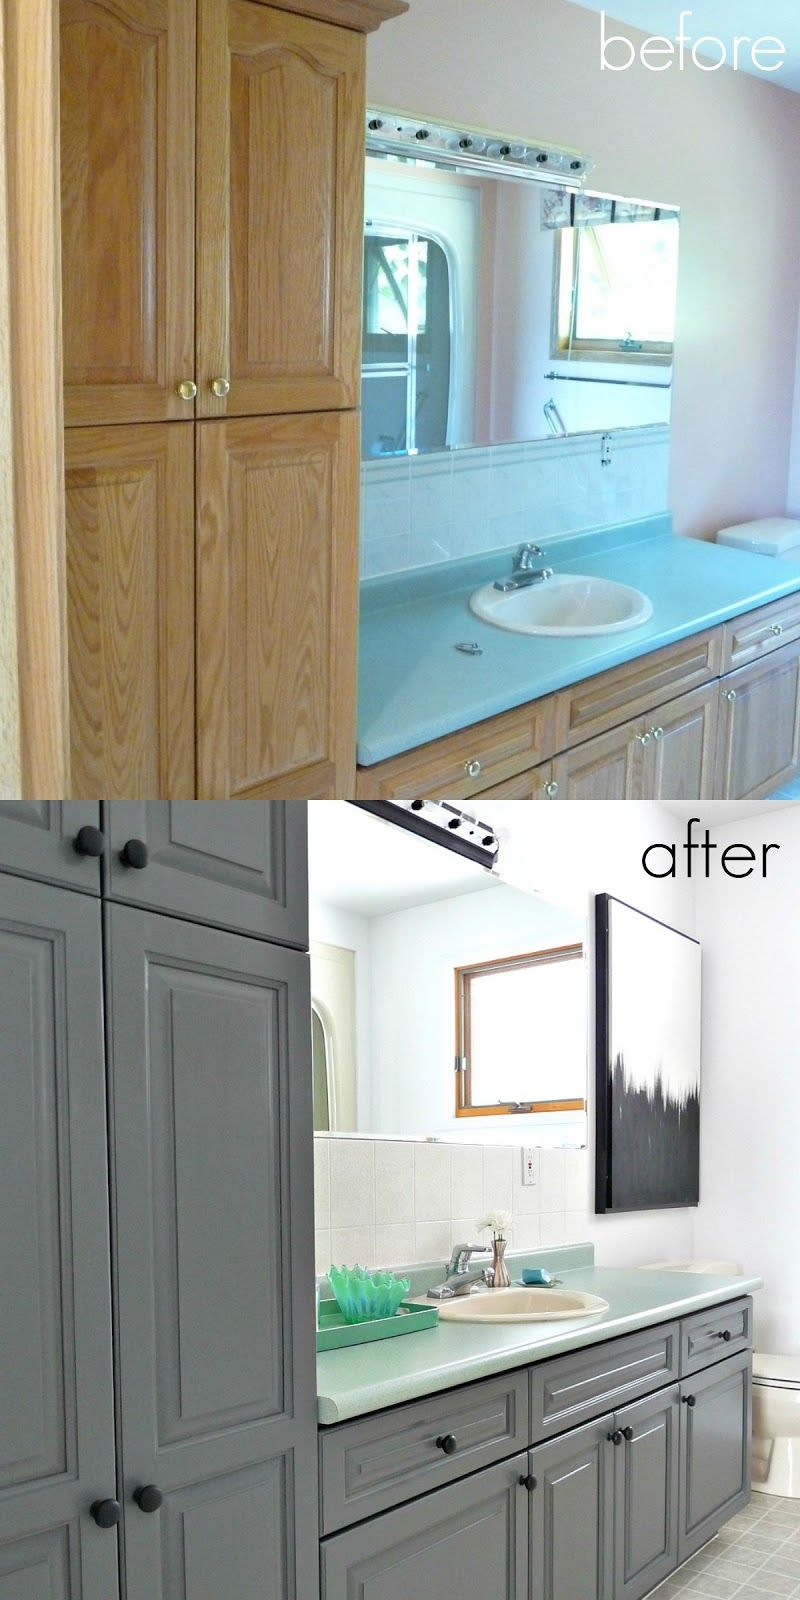 A Budget-Friendly Bathroom Makeover Using Paint | Pinterest ...